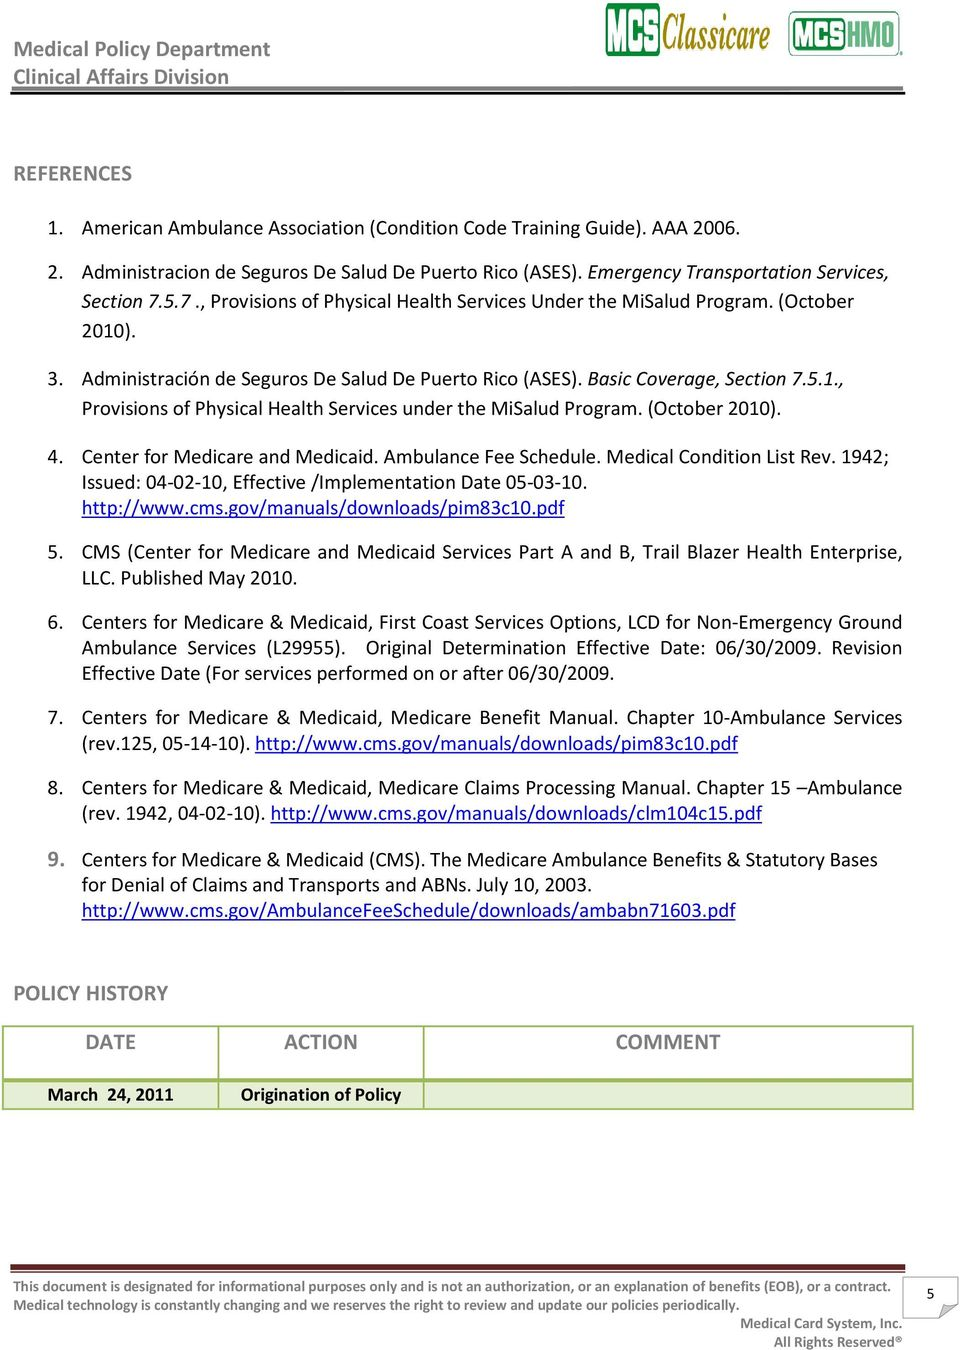 (October 2010). 4. Center for Medicare and Medicaid. Ambulance Fee Schedule. Medical Condition List Rev. 1942; Issued: 04-02-10, Effective /Implementation Date 05-03-10. http://www.cms.